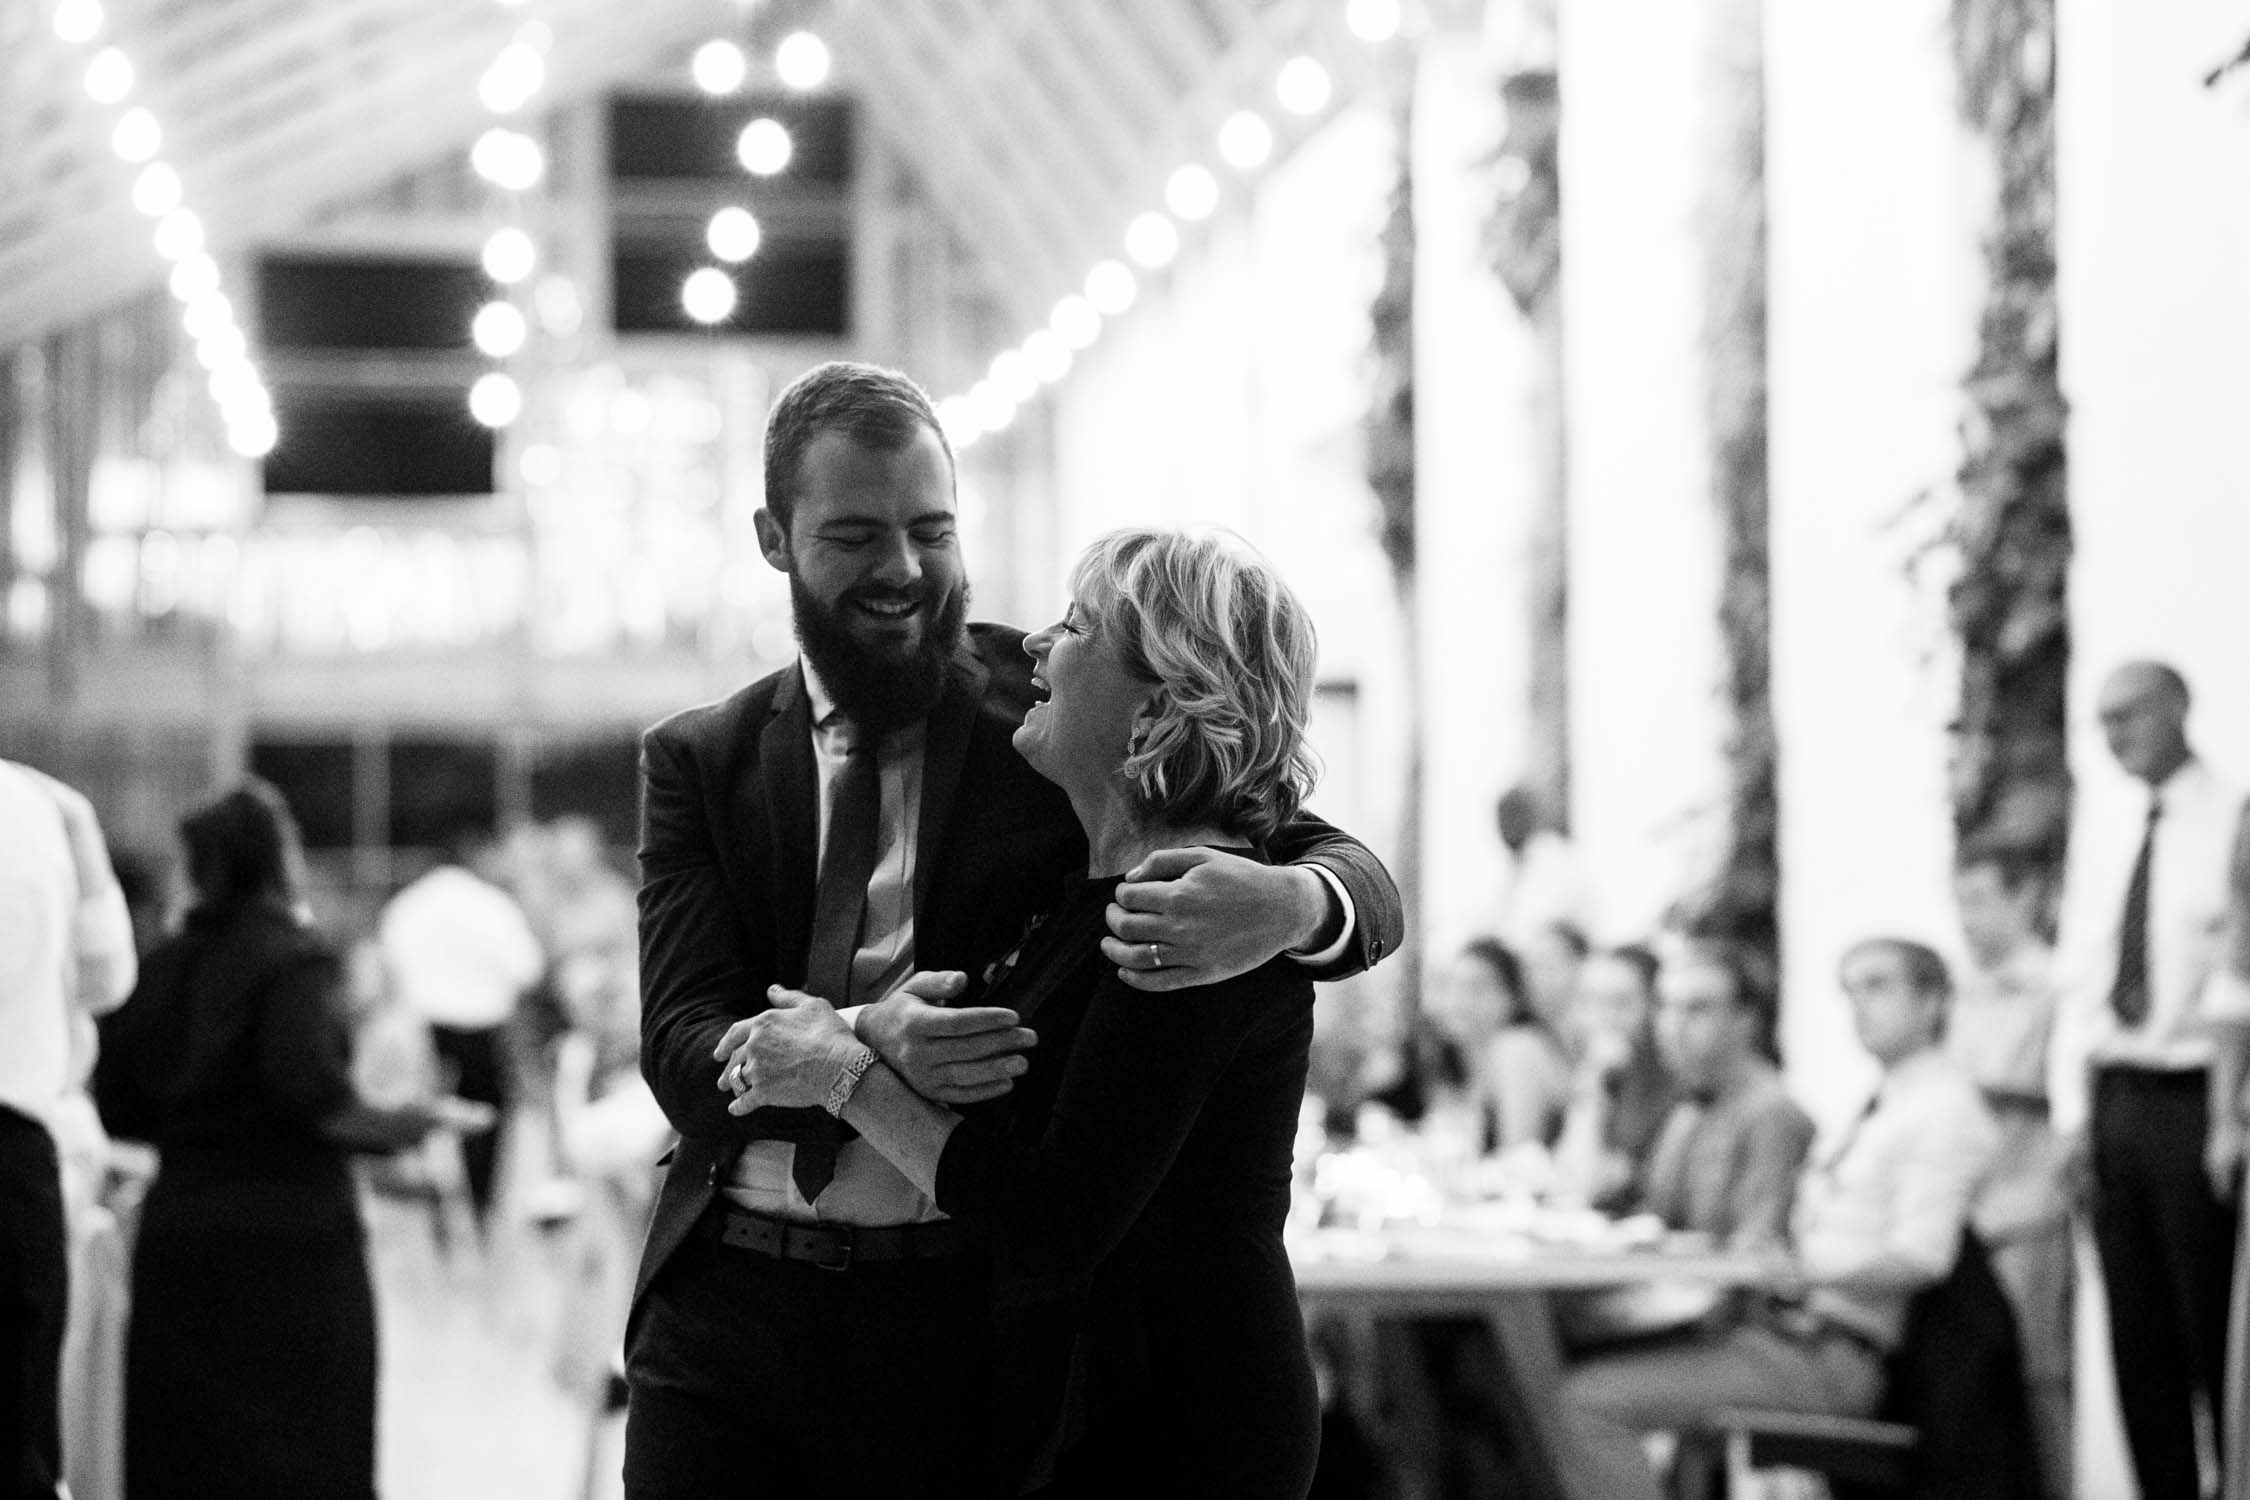 Mother and son dance at The Pipe Shop Wedding Venue in Vancouver, Canada